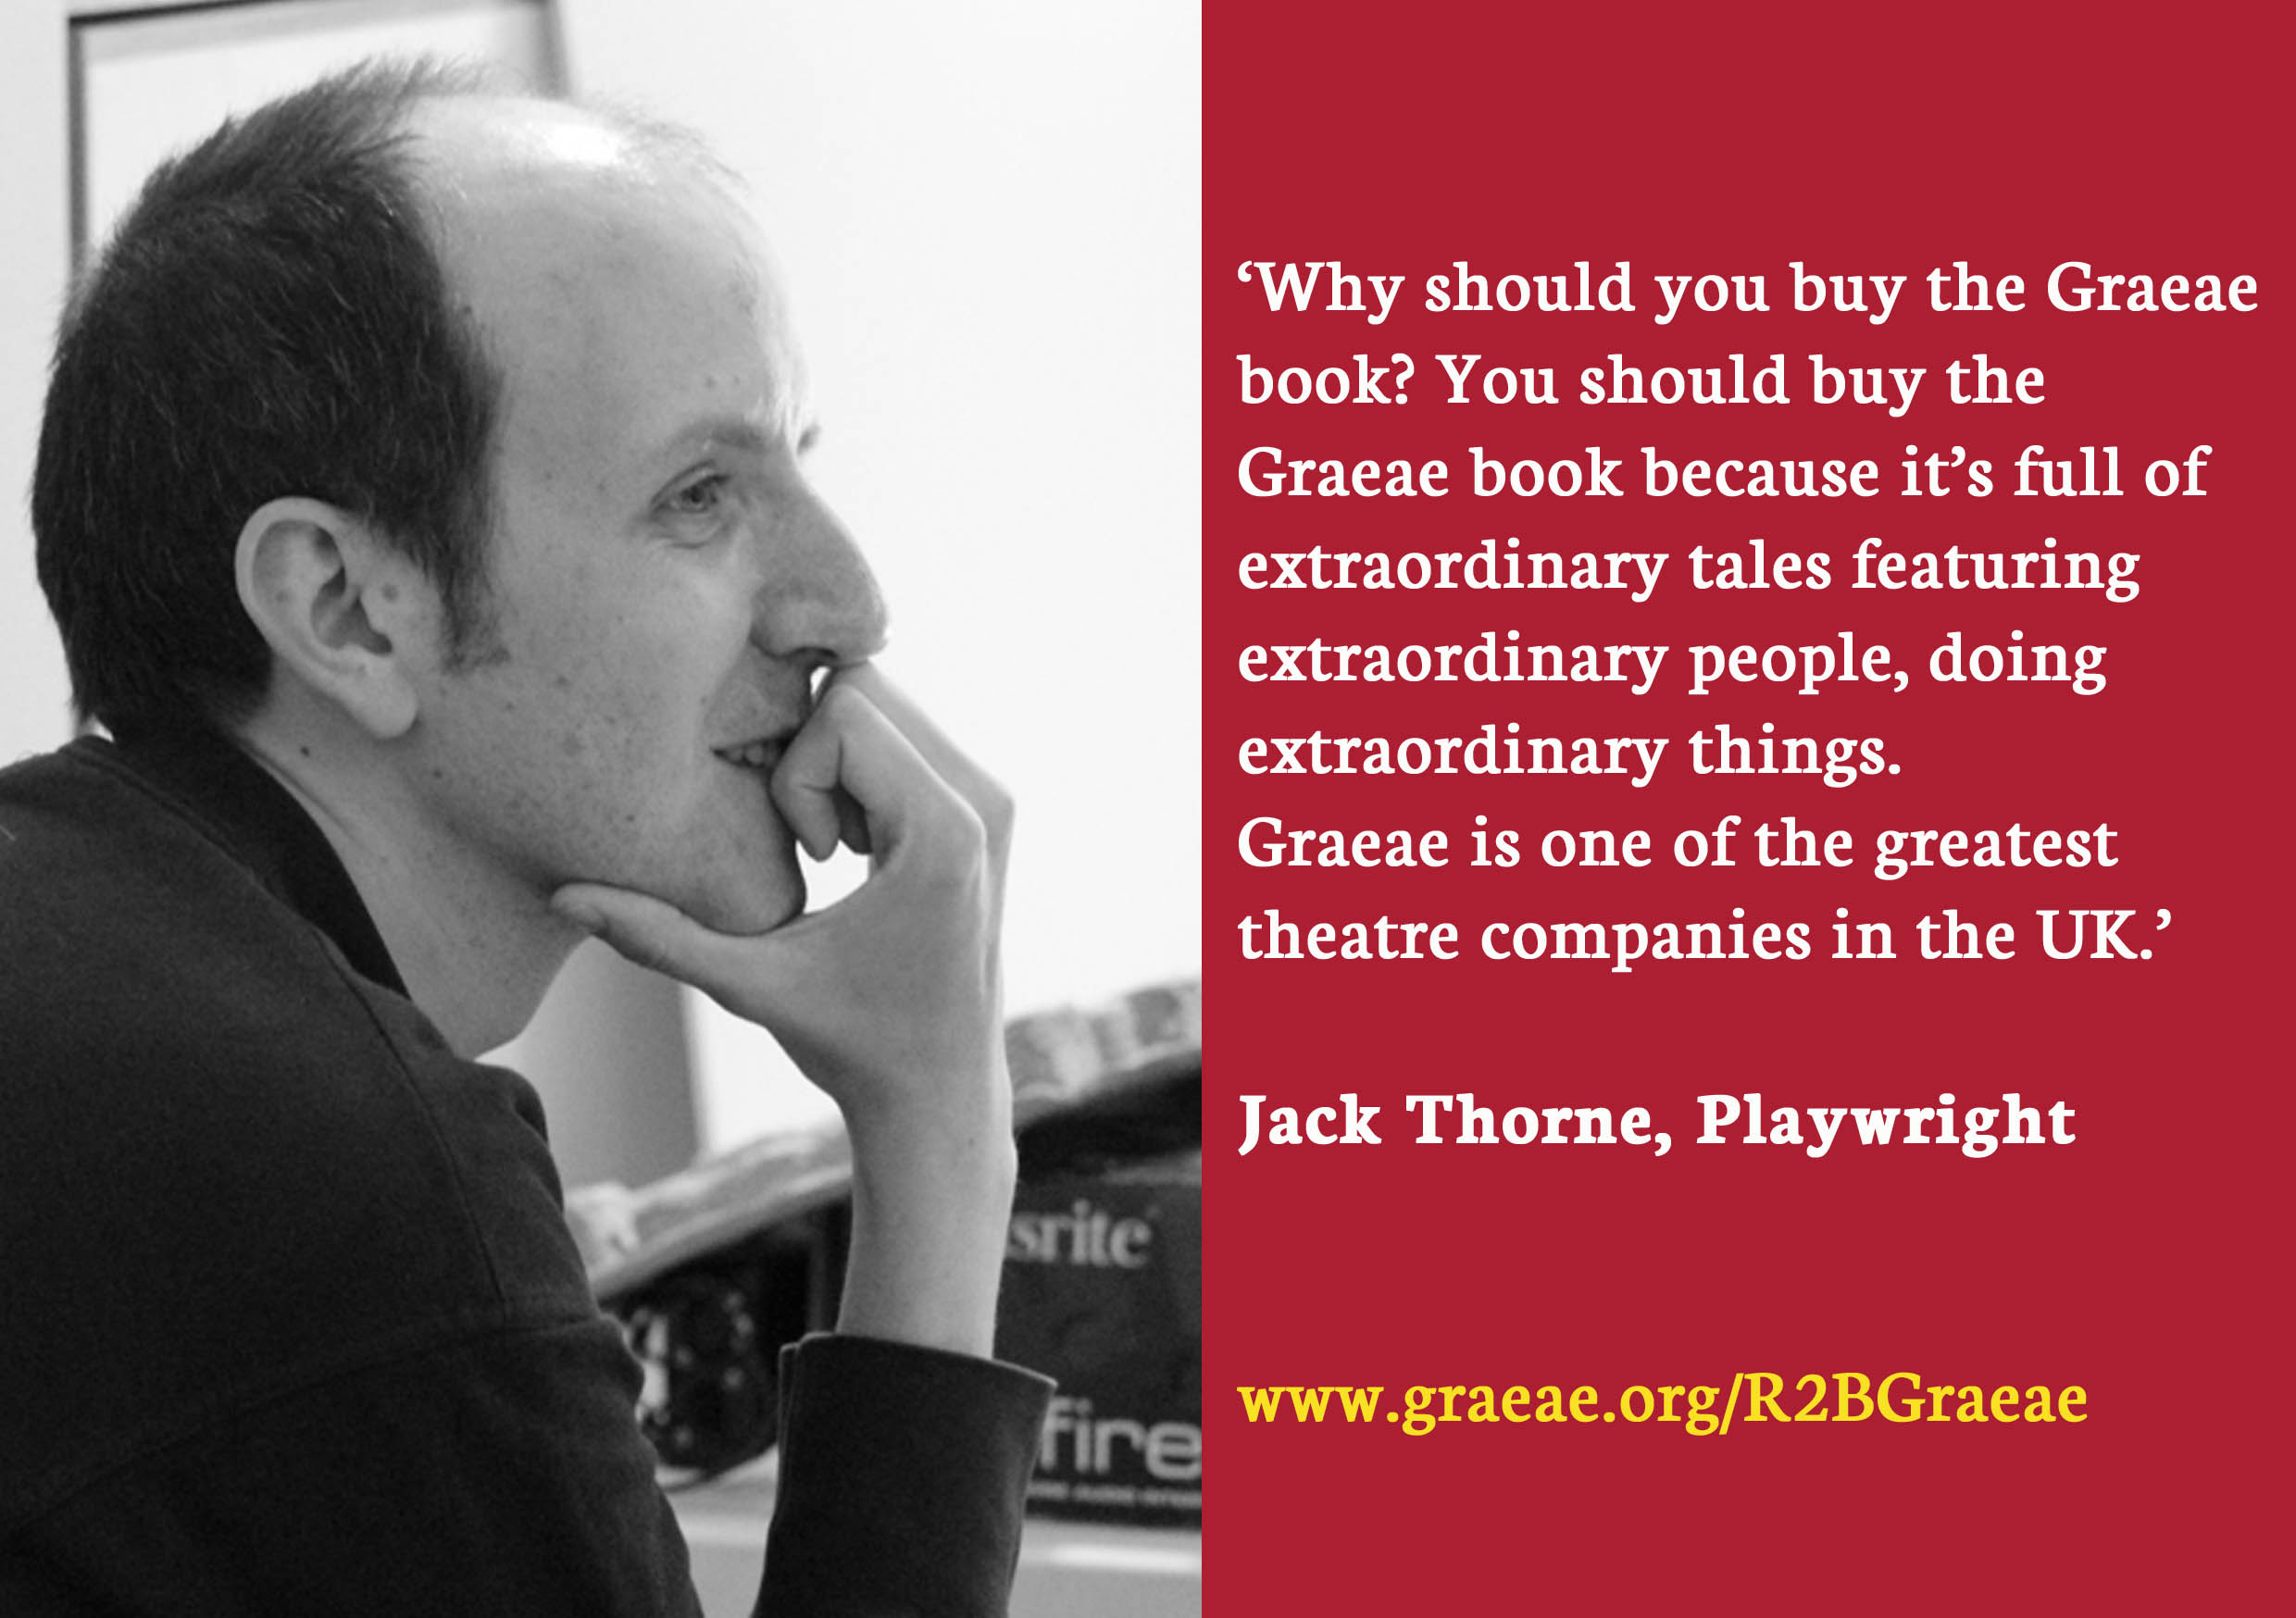 A photo of Jack Thorne, with a quote next to it reading 'why should you buy the Graeae book? You should buy the Graeae book because it's full of extraordinary tales featuring extraordinary people doing extraordinary things. Graeae is one of the greatest theatre companies in the UK.'